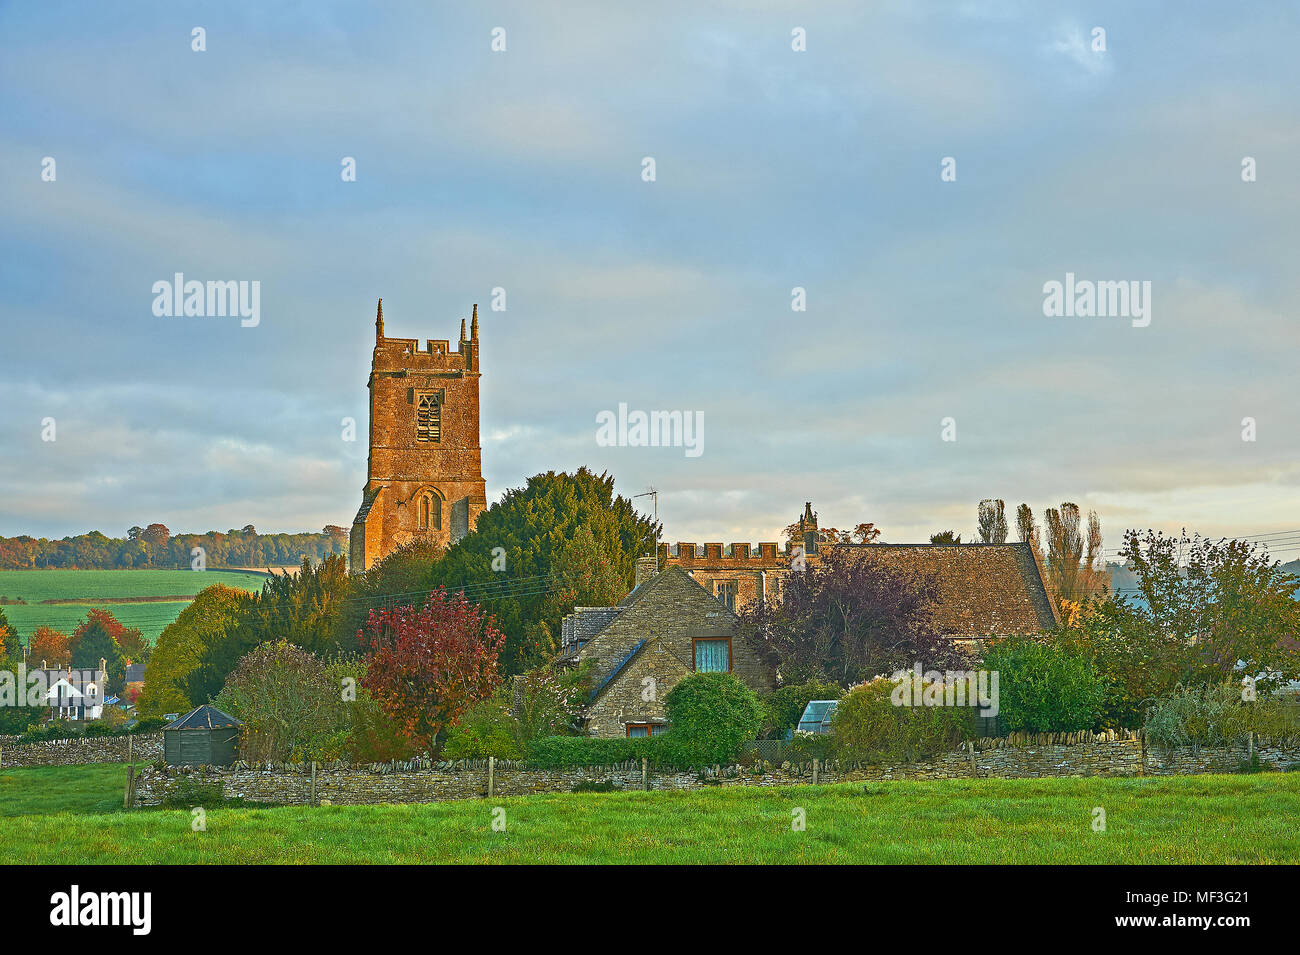 Rural South Warwickshire scene withSt Peter's church in the village of Long Compton with early morning sunshine lighting up the church tower - Stock Image